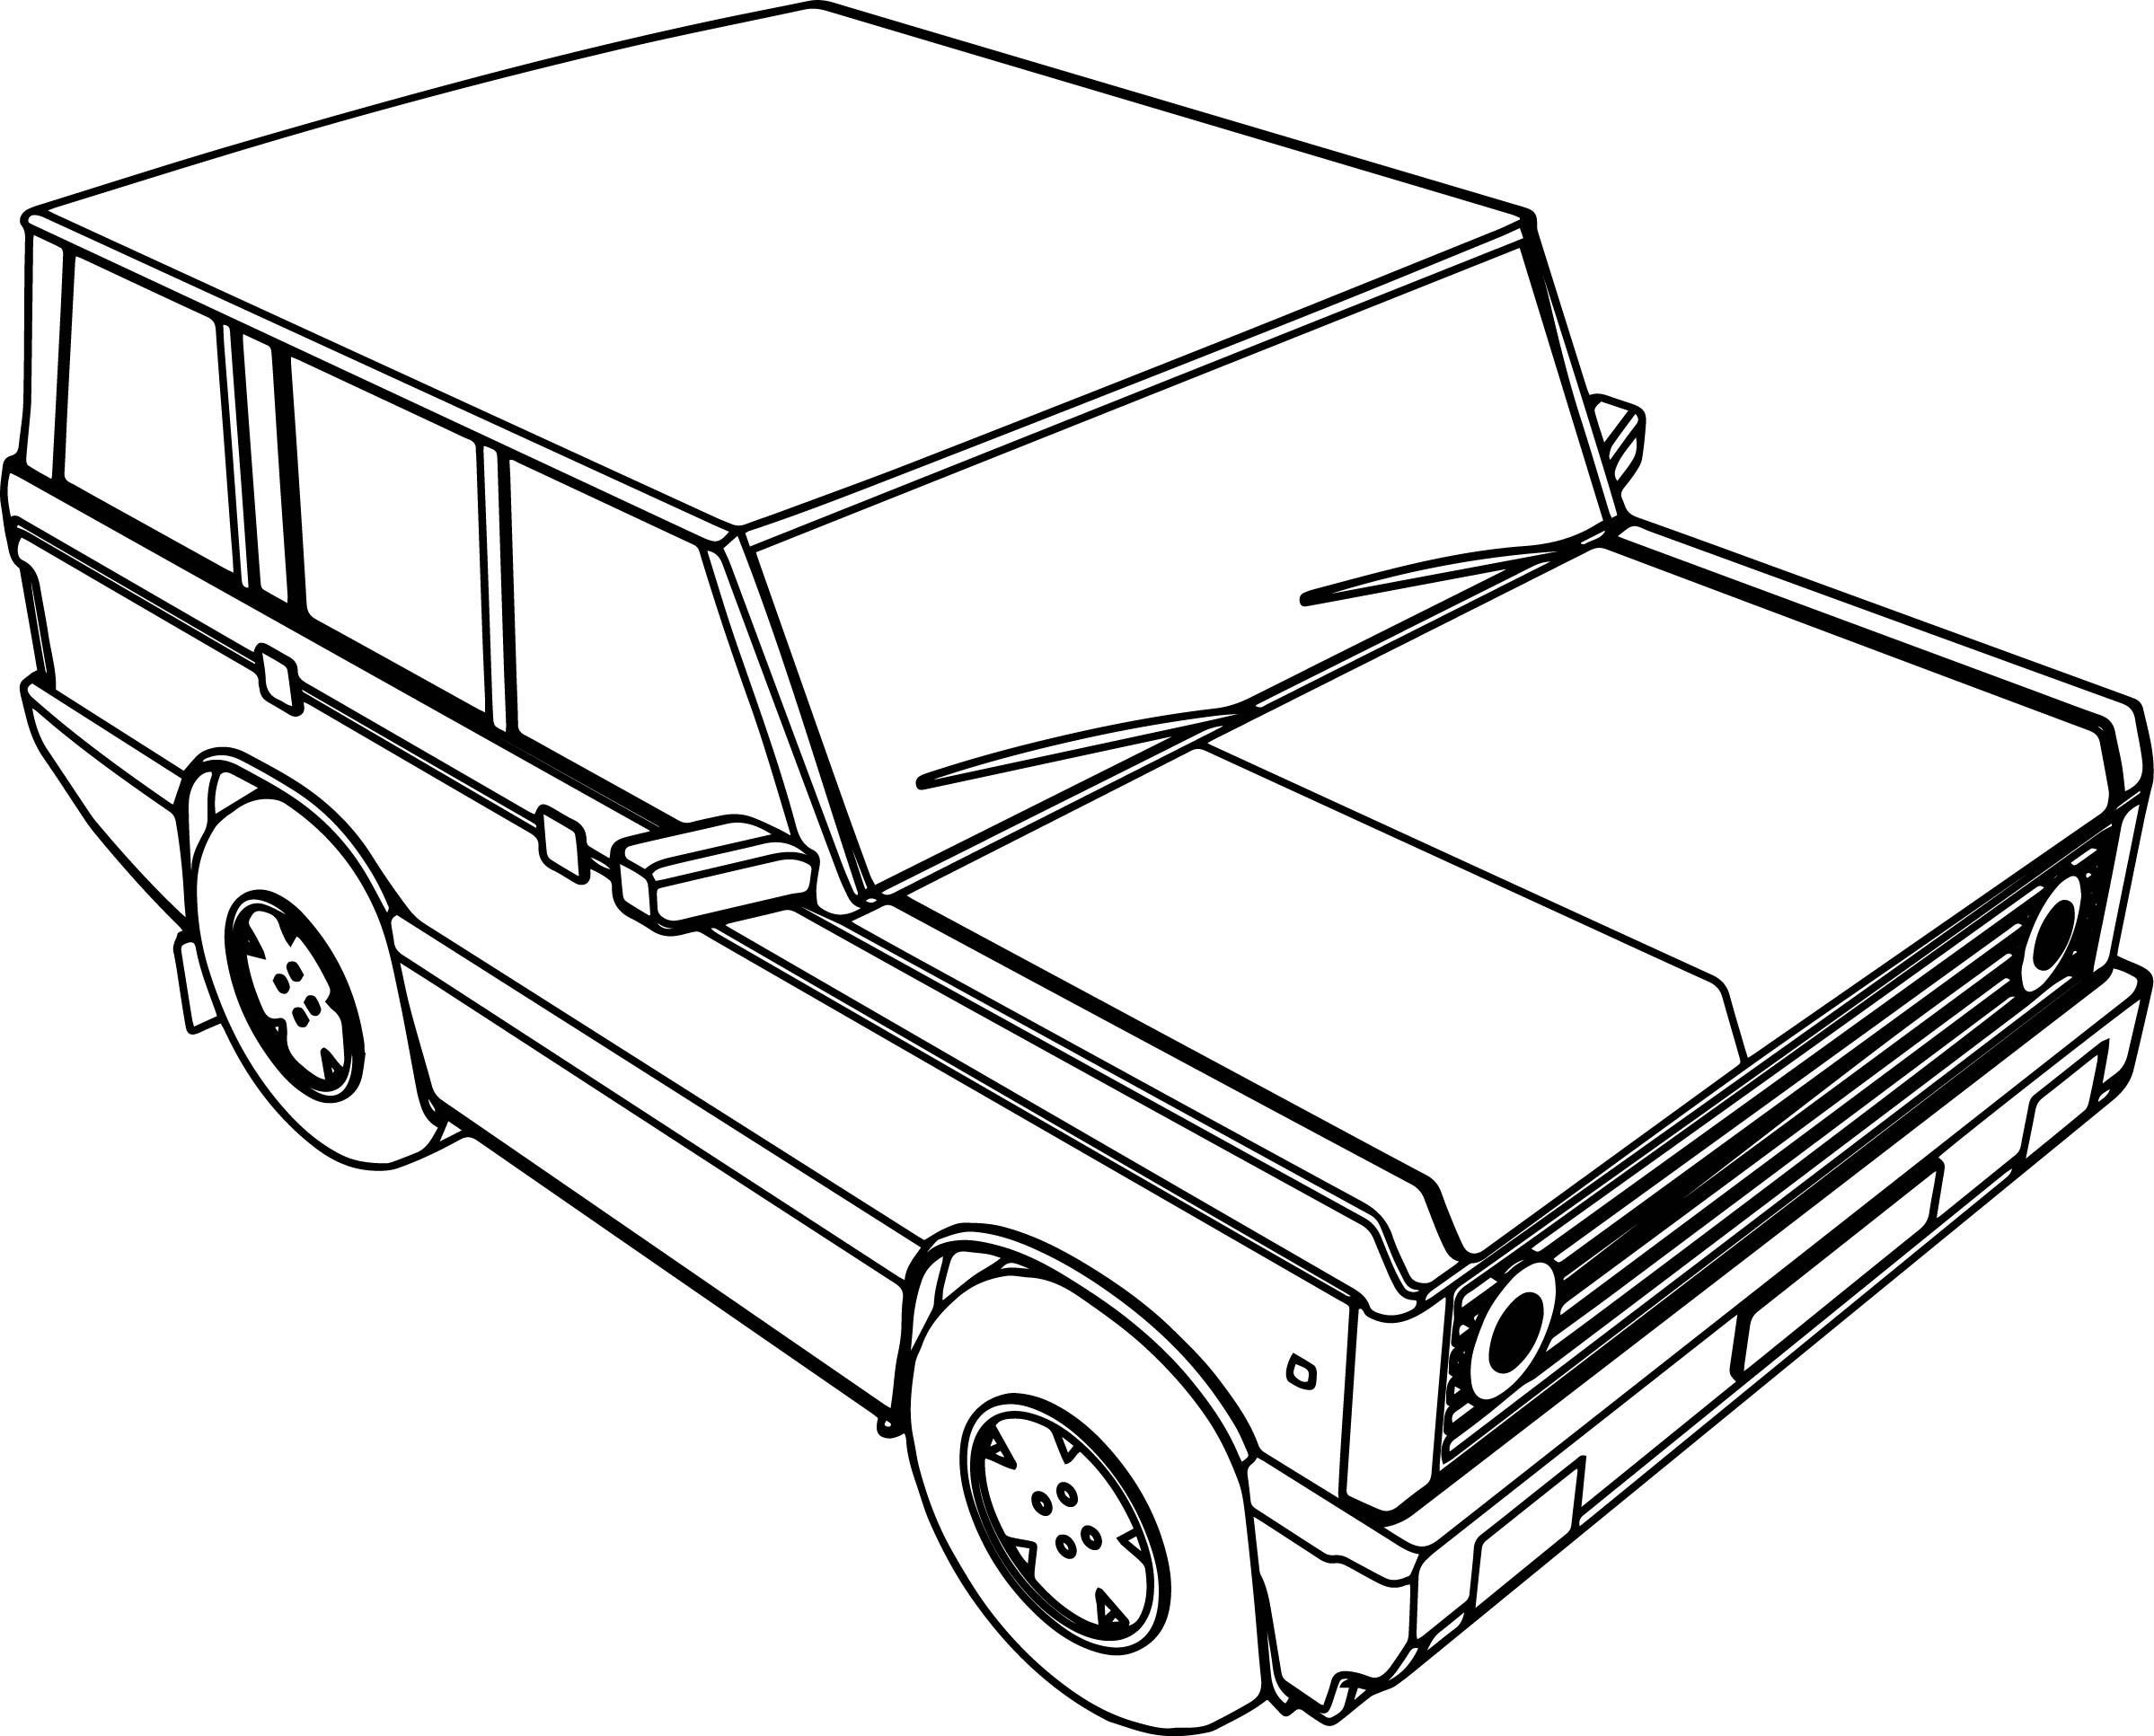 Top Wheel Basic Car Coloring Page With Basic Coloring Pages Basic Coloring Pages